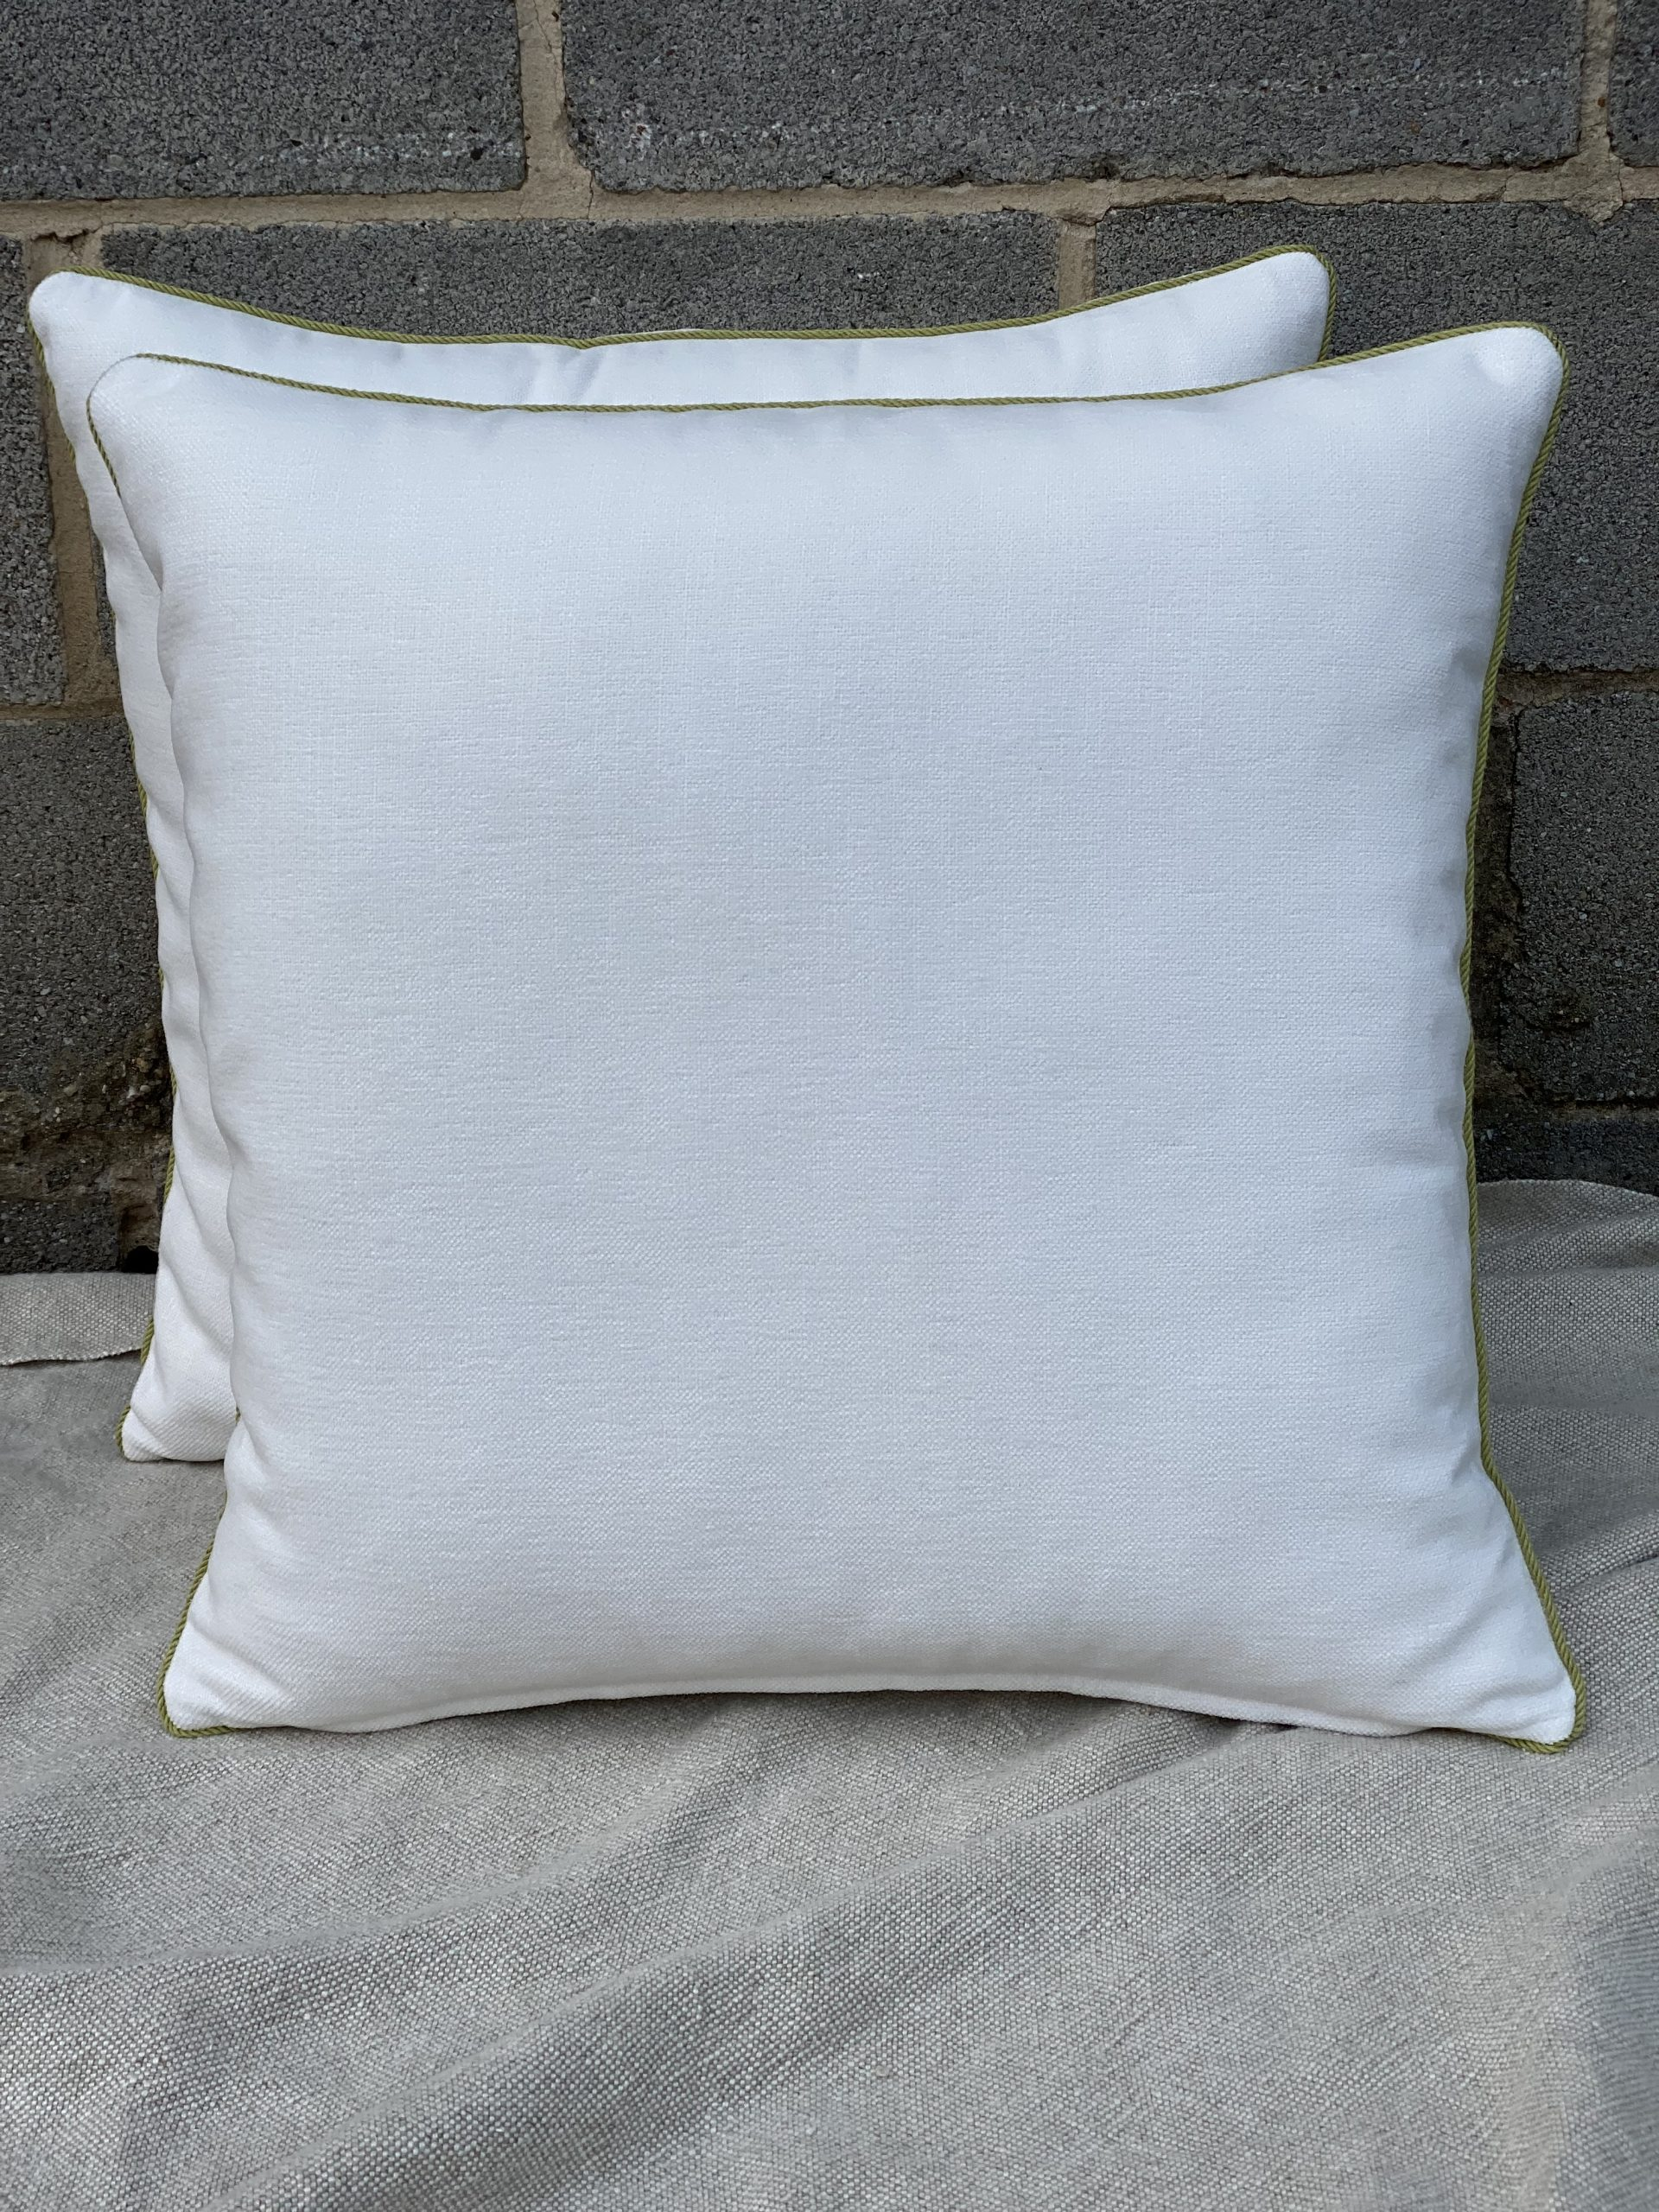 Pillows With Lip Cord